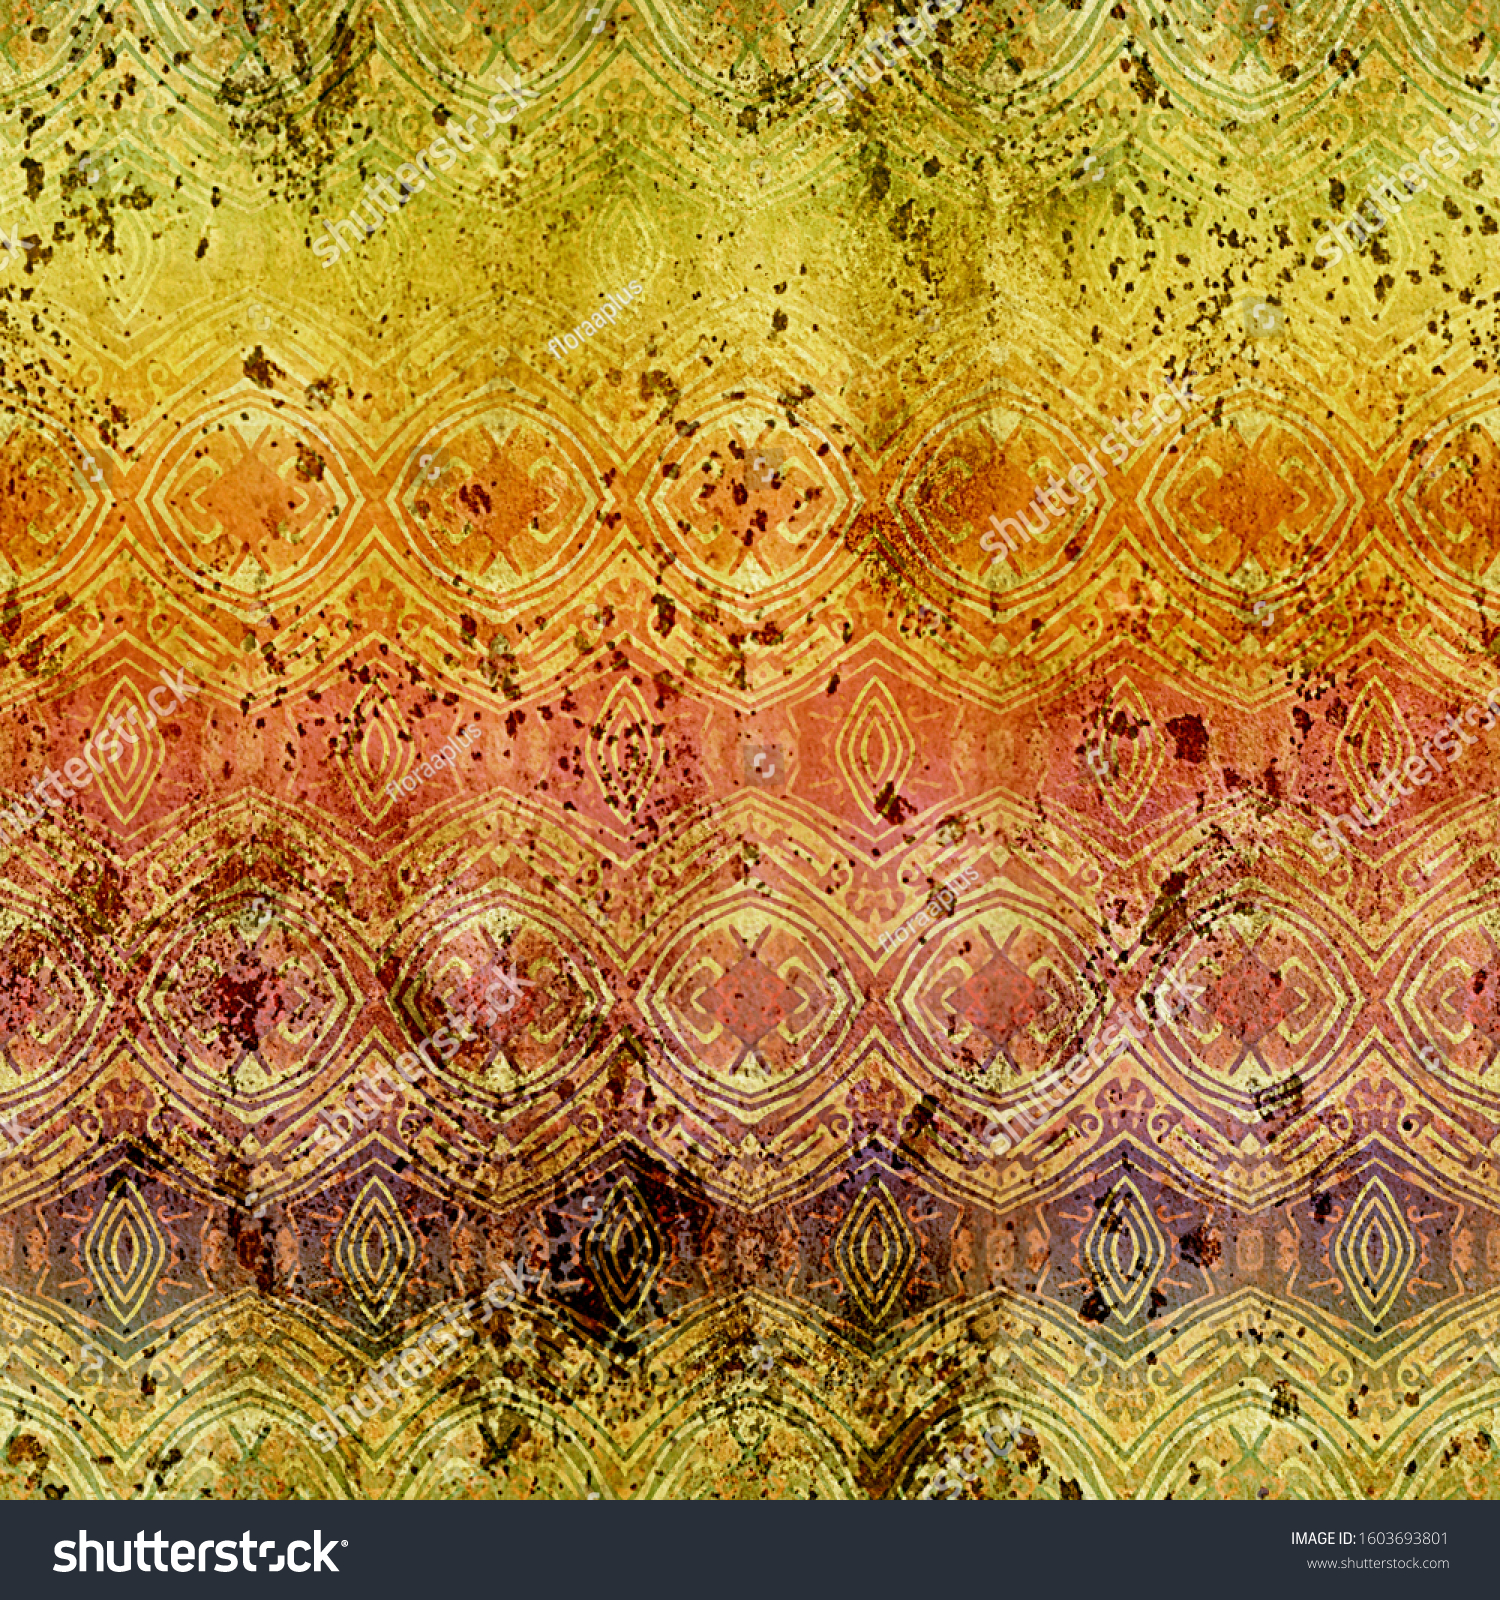 Colorful seamless shabby geometric pattern 2. Artificial ethnic background for manual creativity, and mass production of various goods.